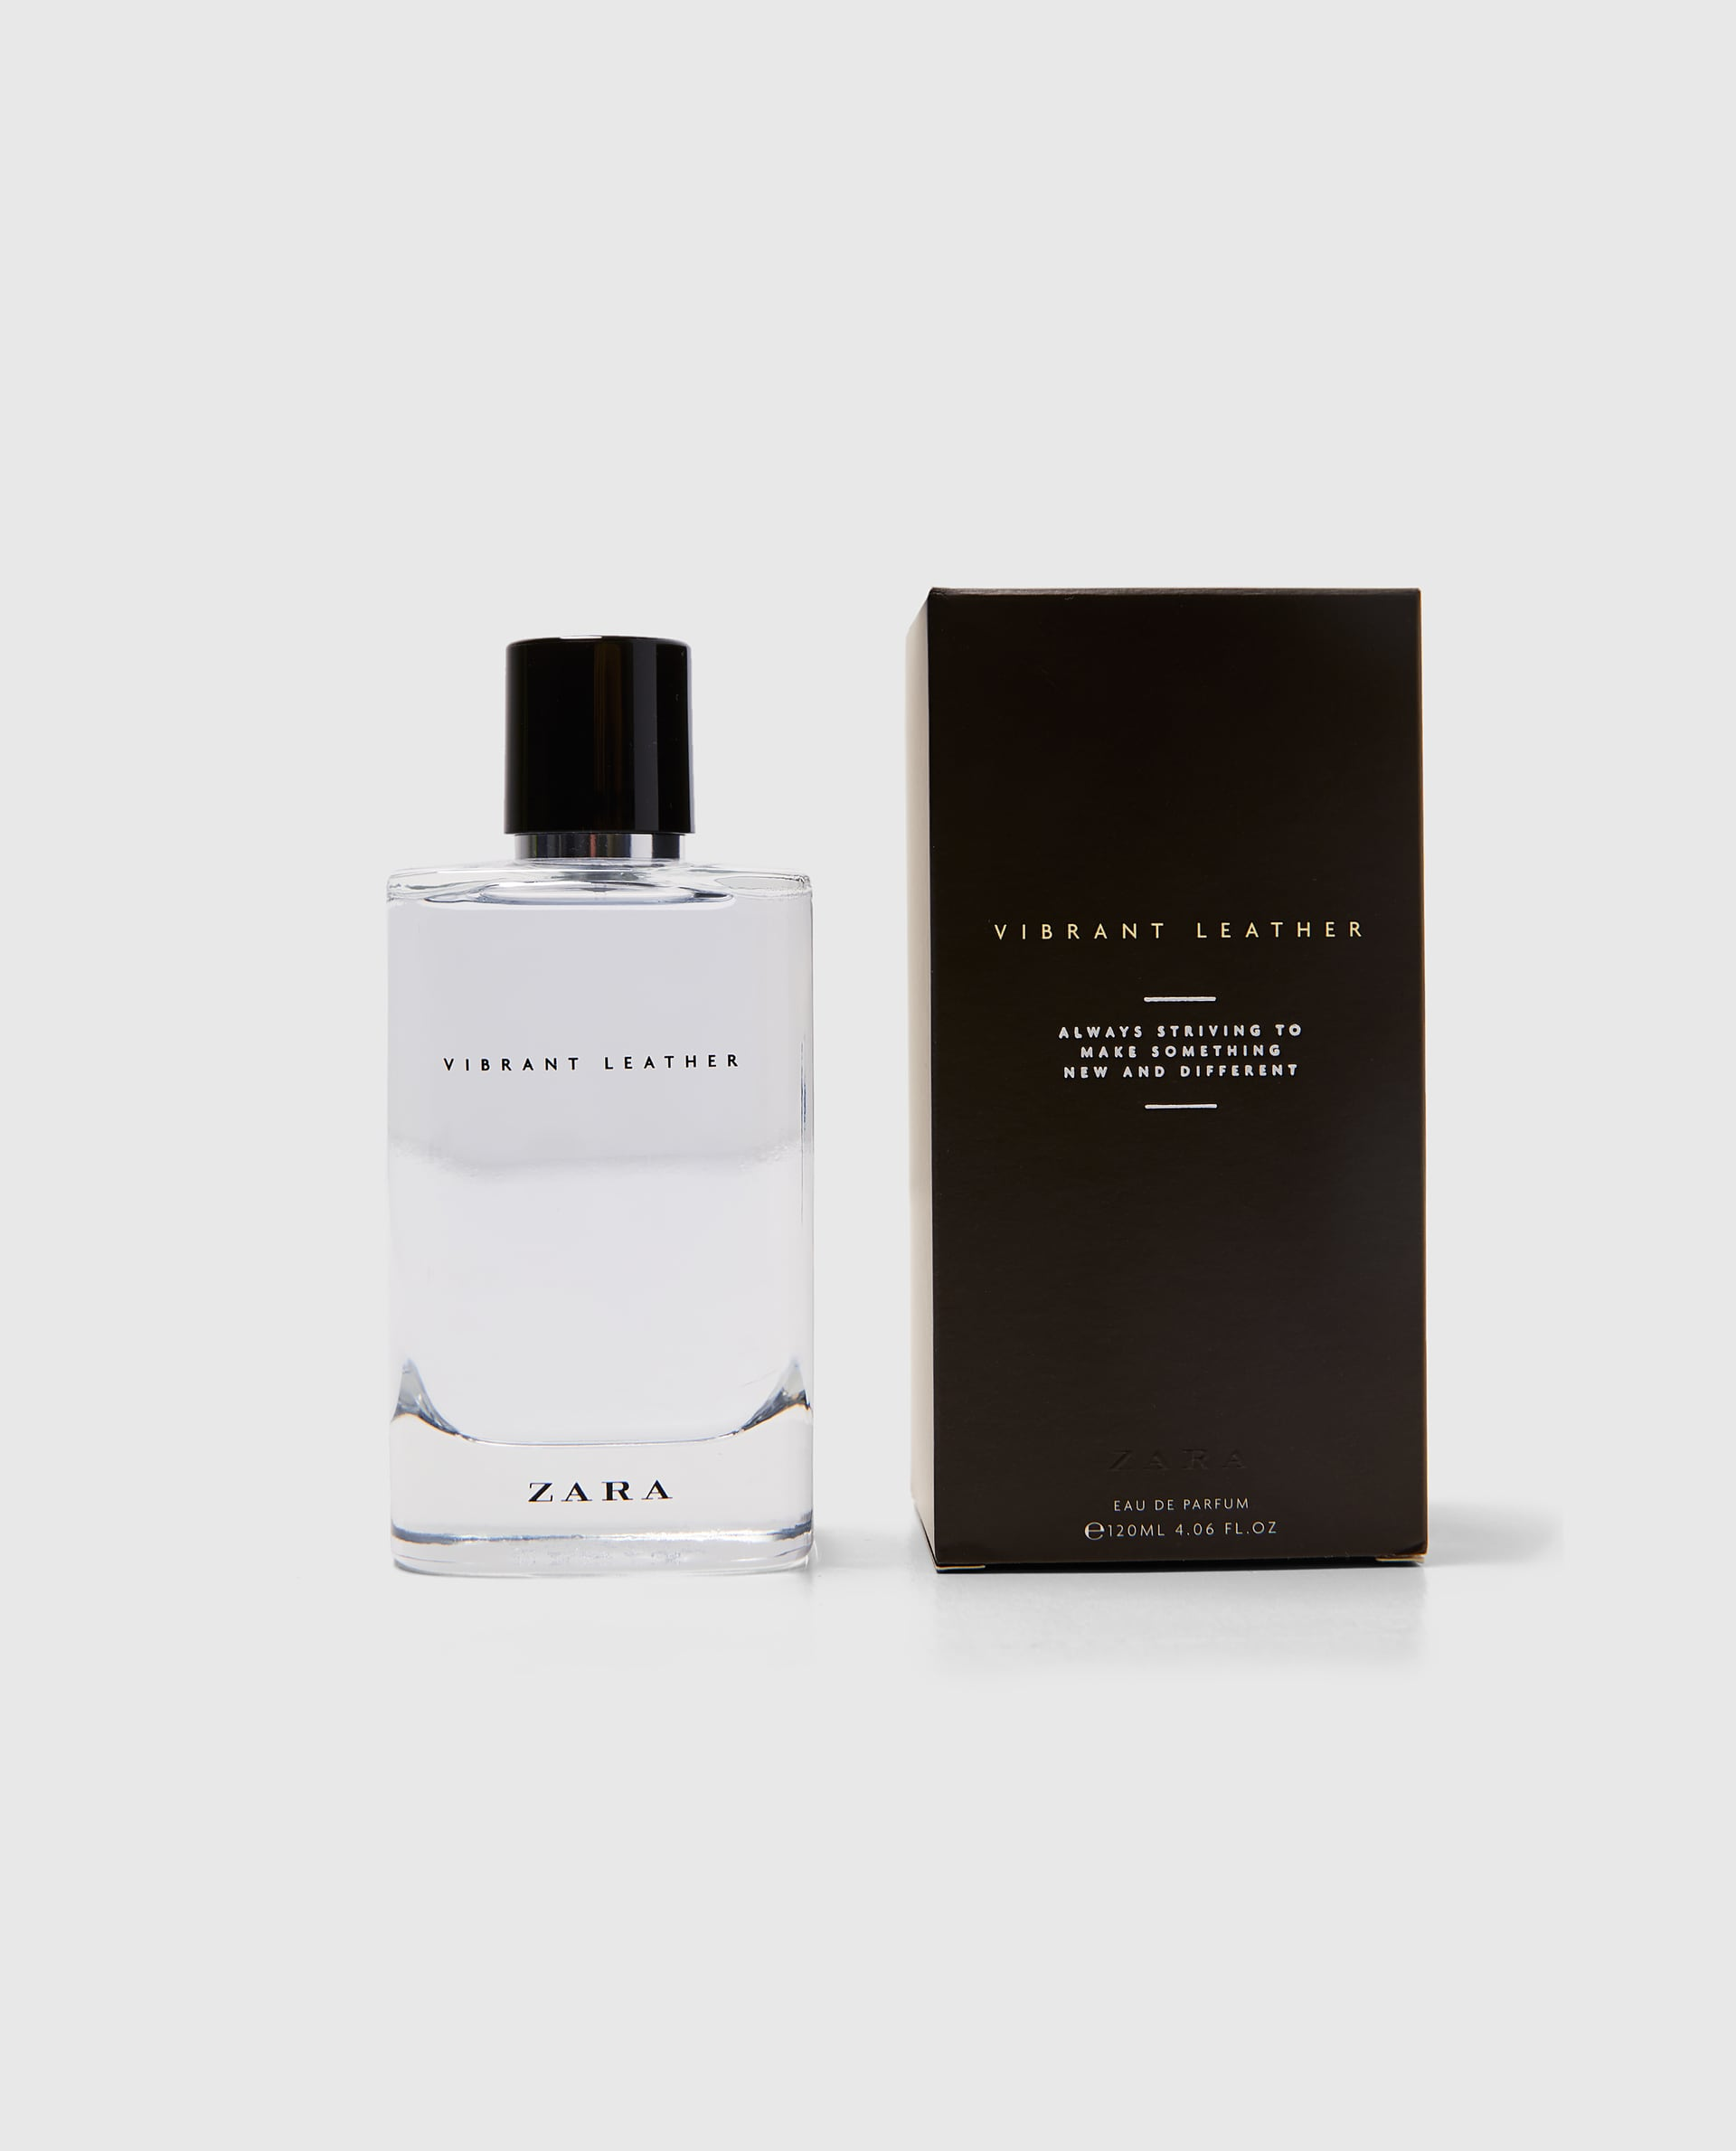 Vibrant Leather Eau De Parfum Zara Cologne A New Fragrance For Men